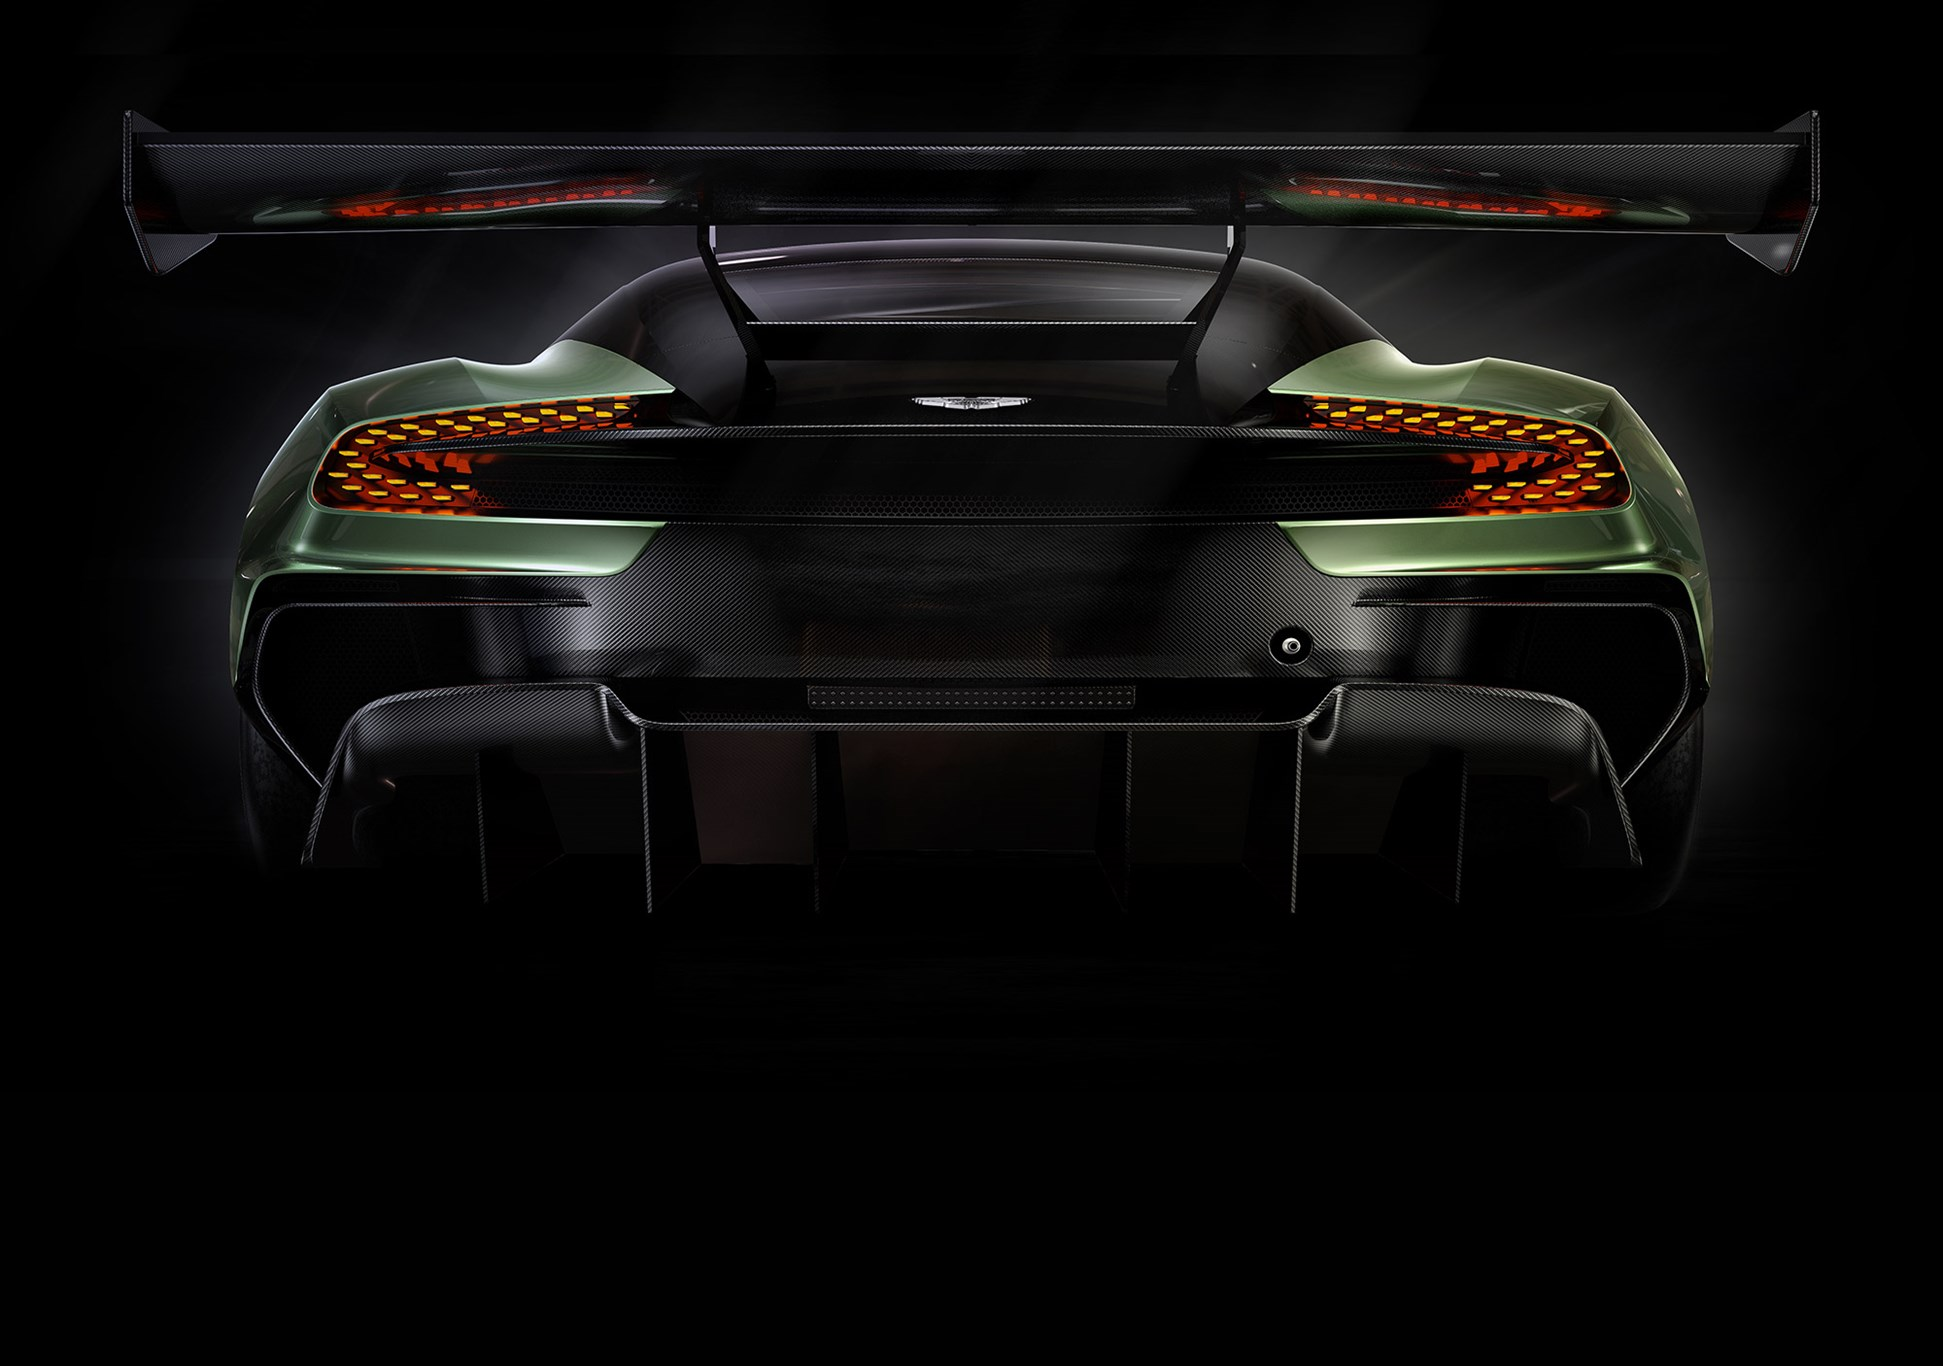 Mclaren p1 gtr extreme track weapon unveiled pictures - Rear Of The Year The New Aston Martin Vulcan Has Quite A Bottom